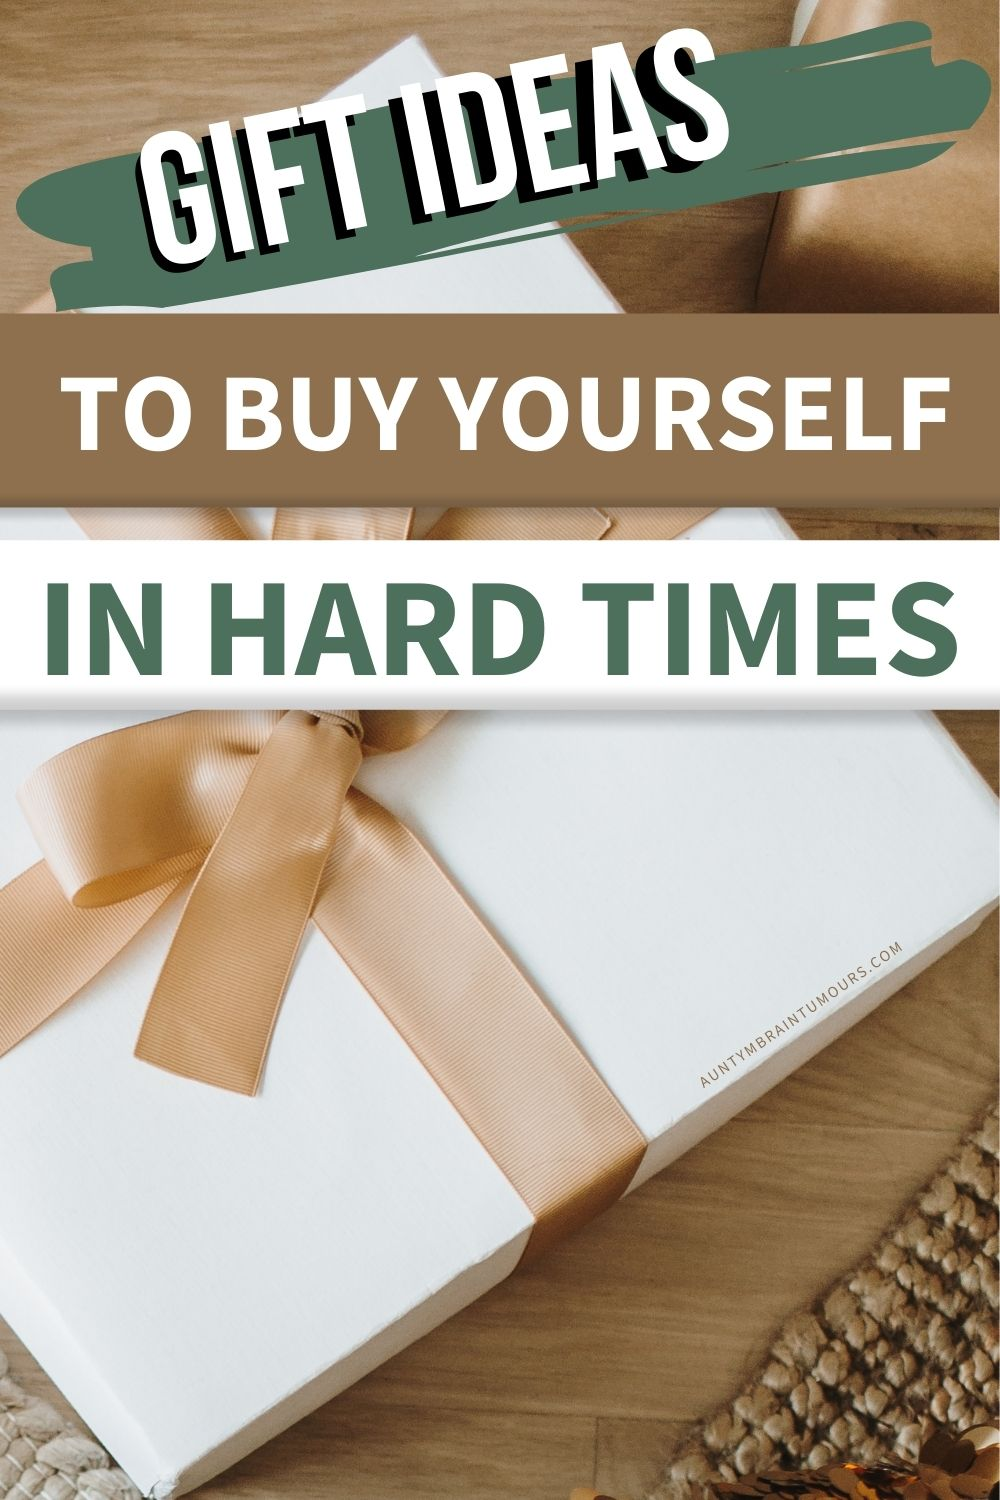 8 Gifts To Buy Yourself To Help Relax In Hard Times